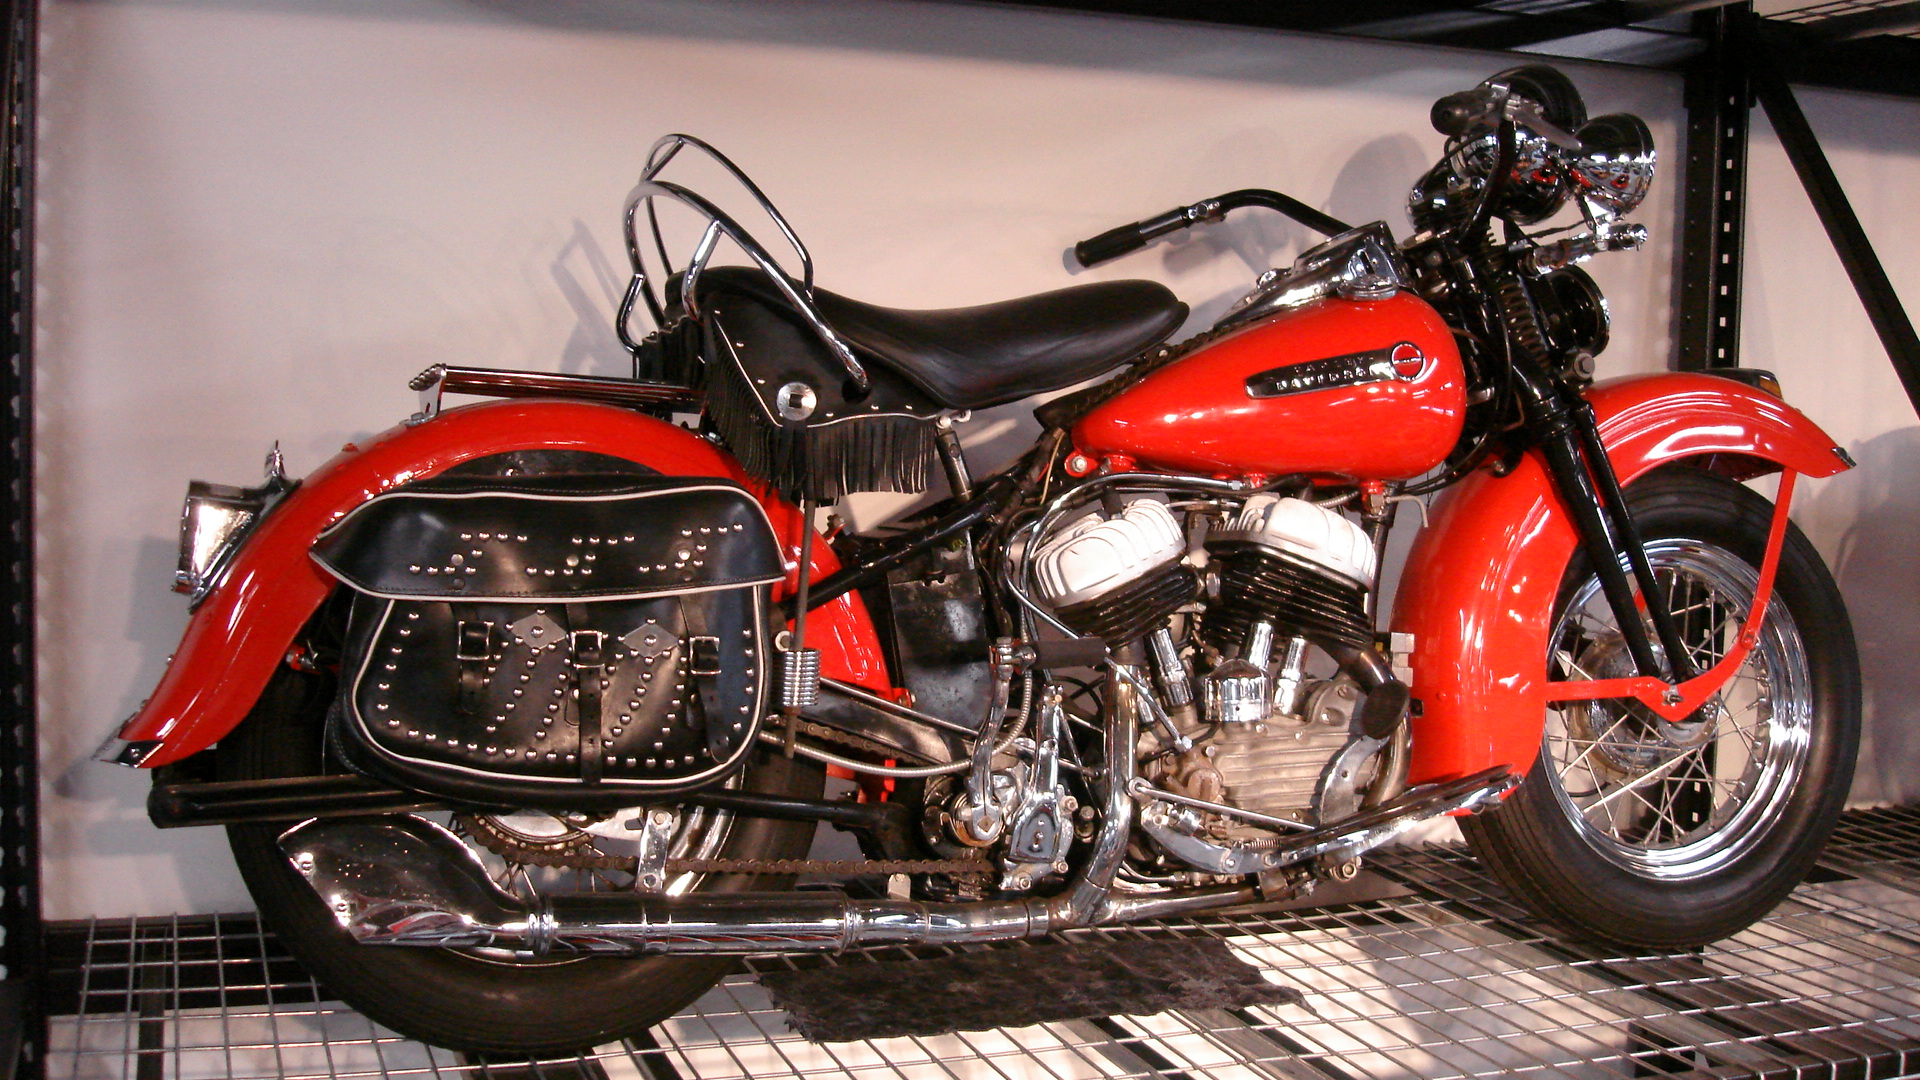 developing a strategic corporate objective for harleydavidson inc The company enjoys a strategic objectives of the study harley davidson inc with the period of this study from 3-4 years.